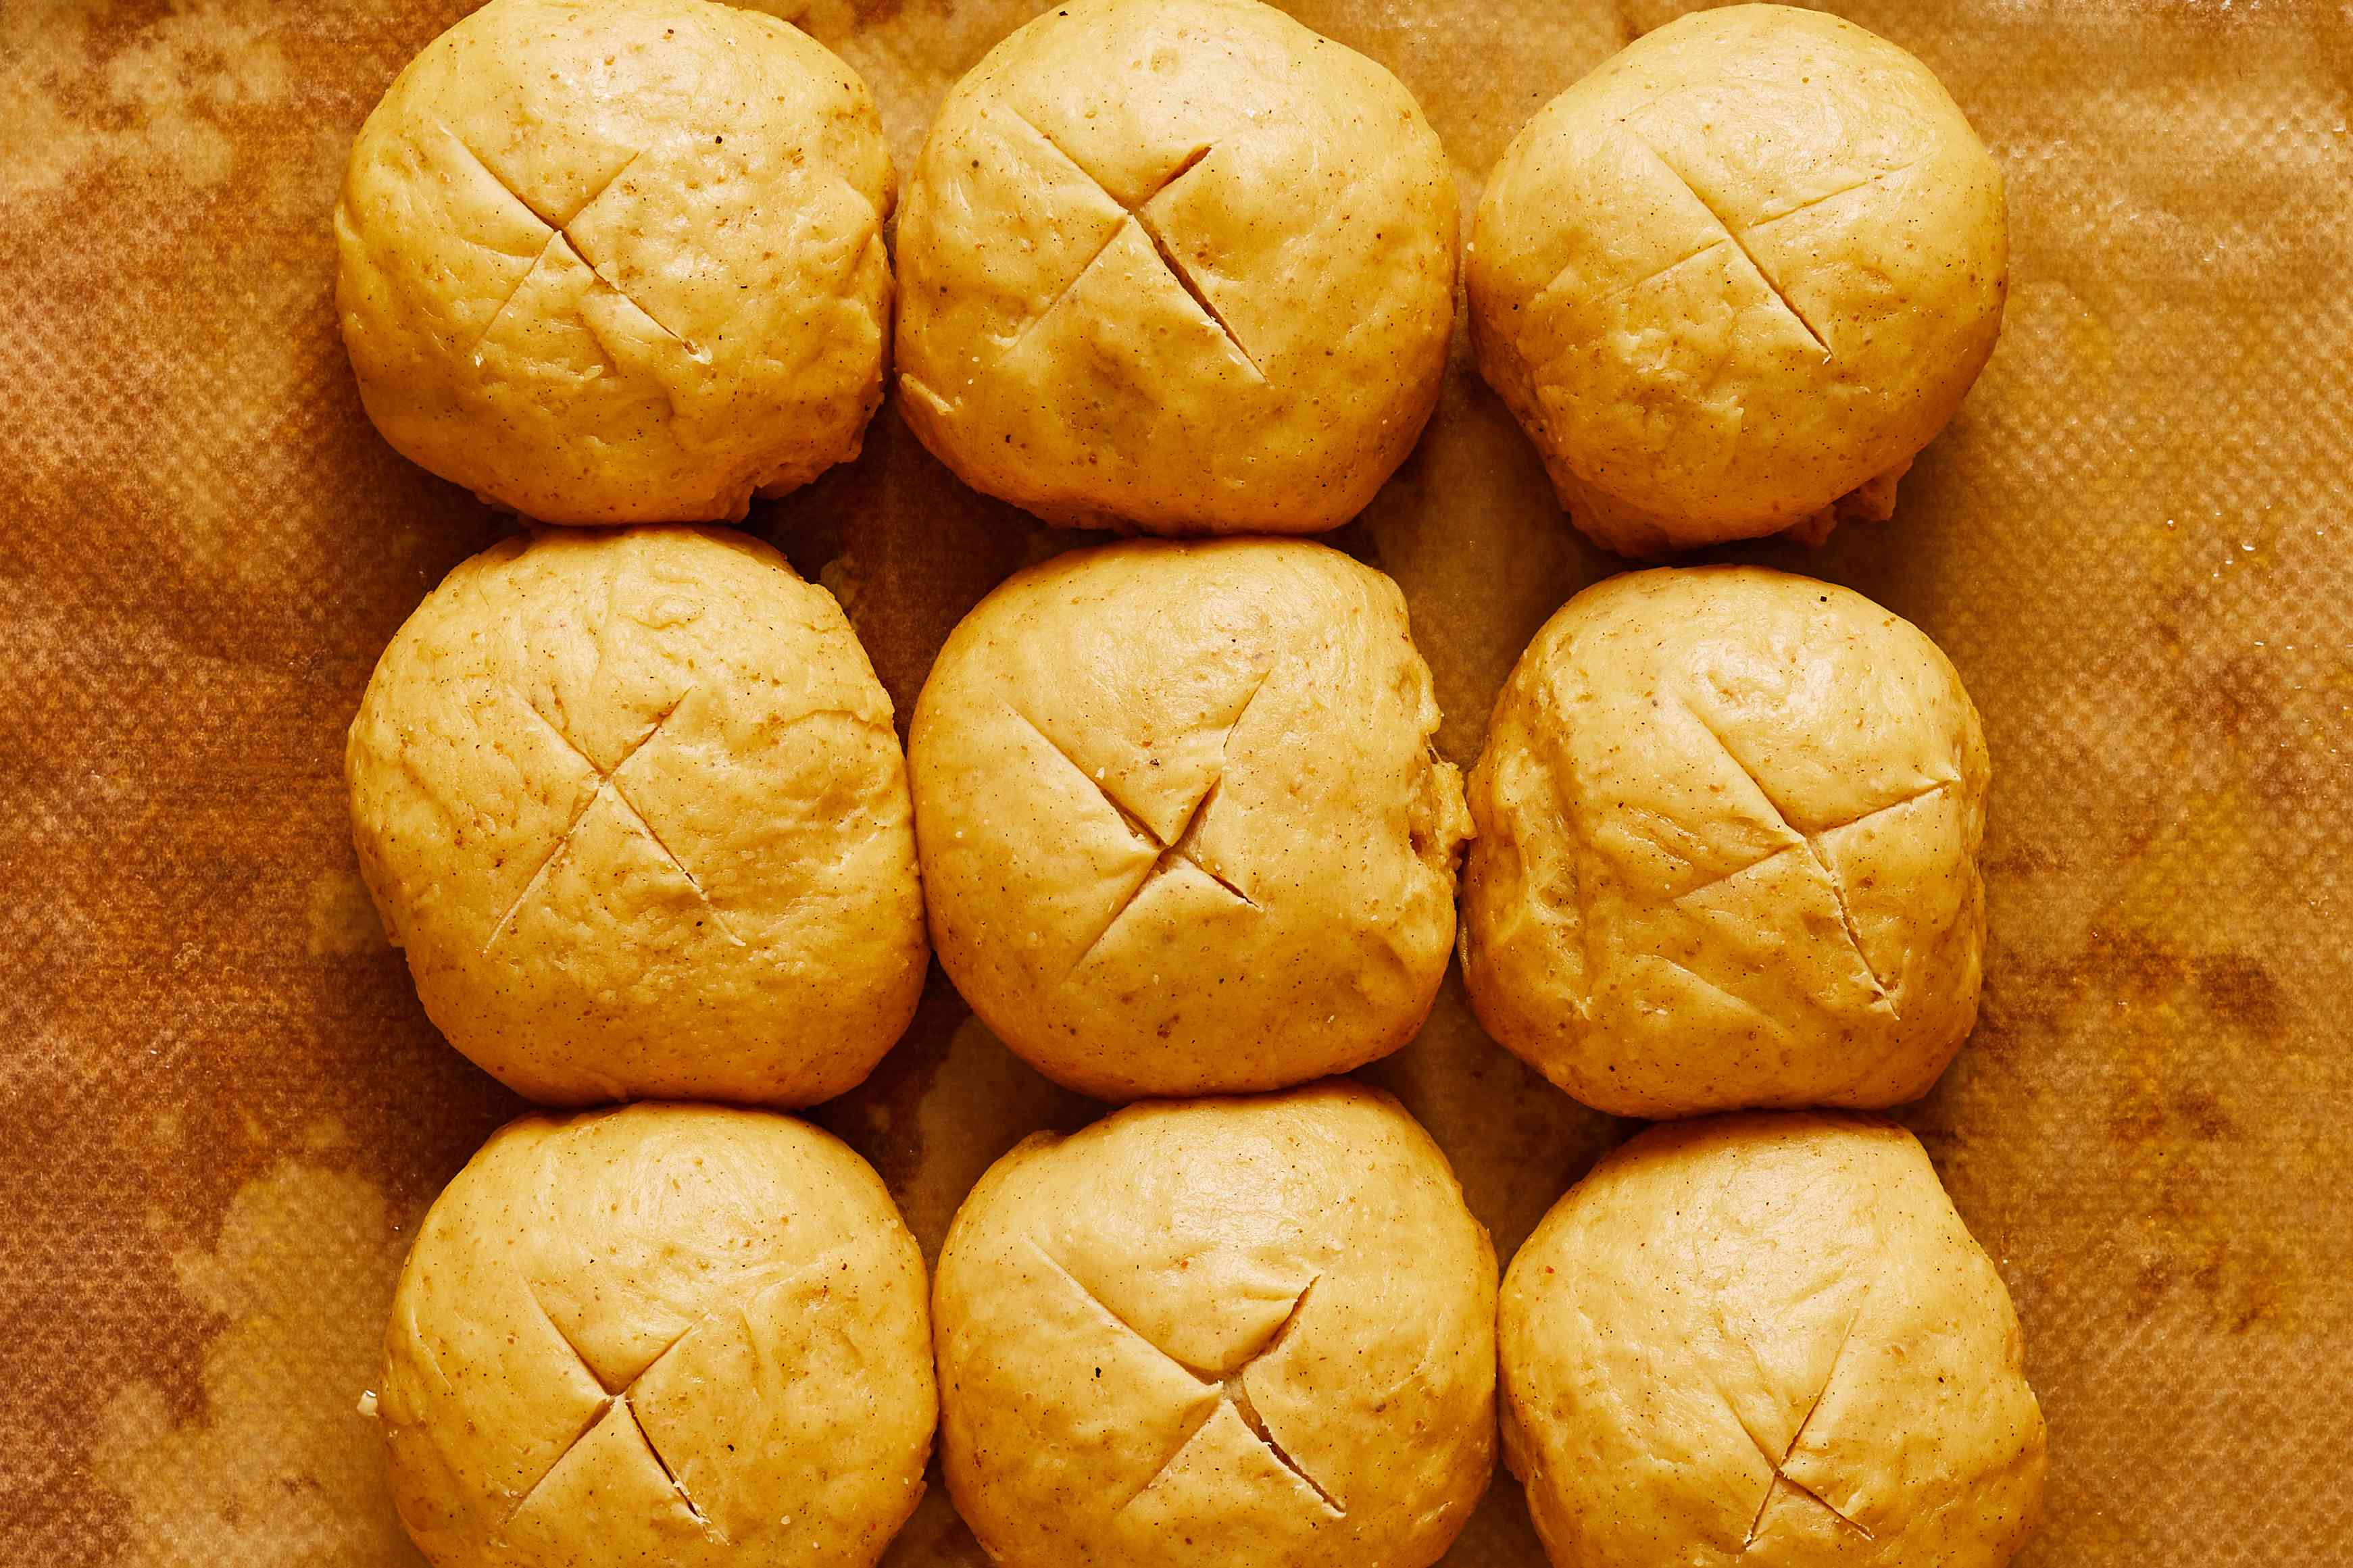 risen dough balls on baking sheet with an X marked on top